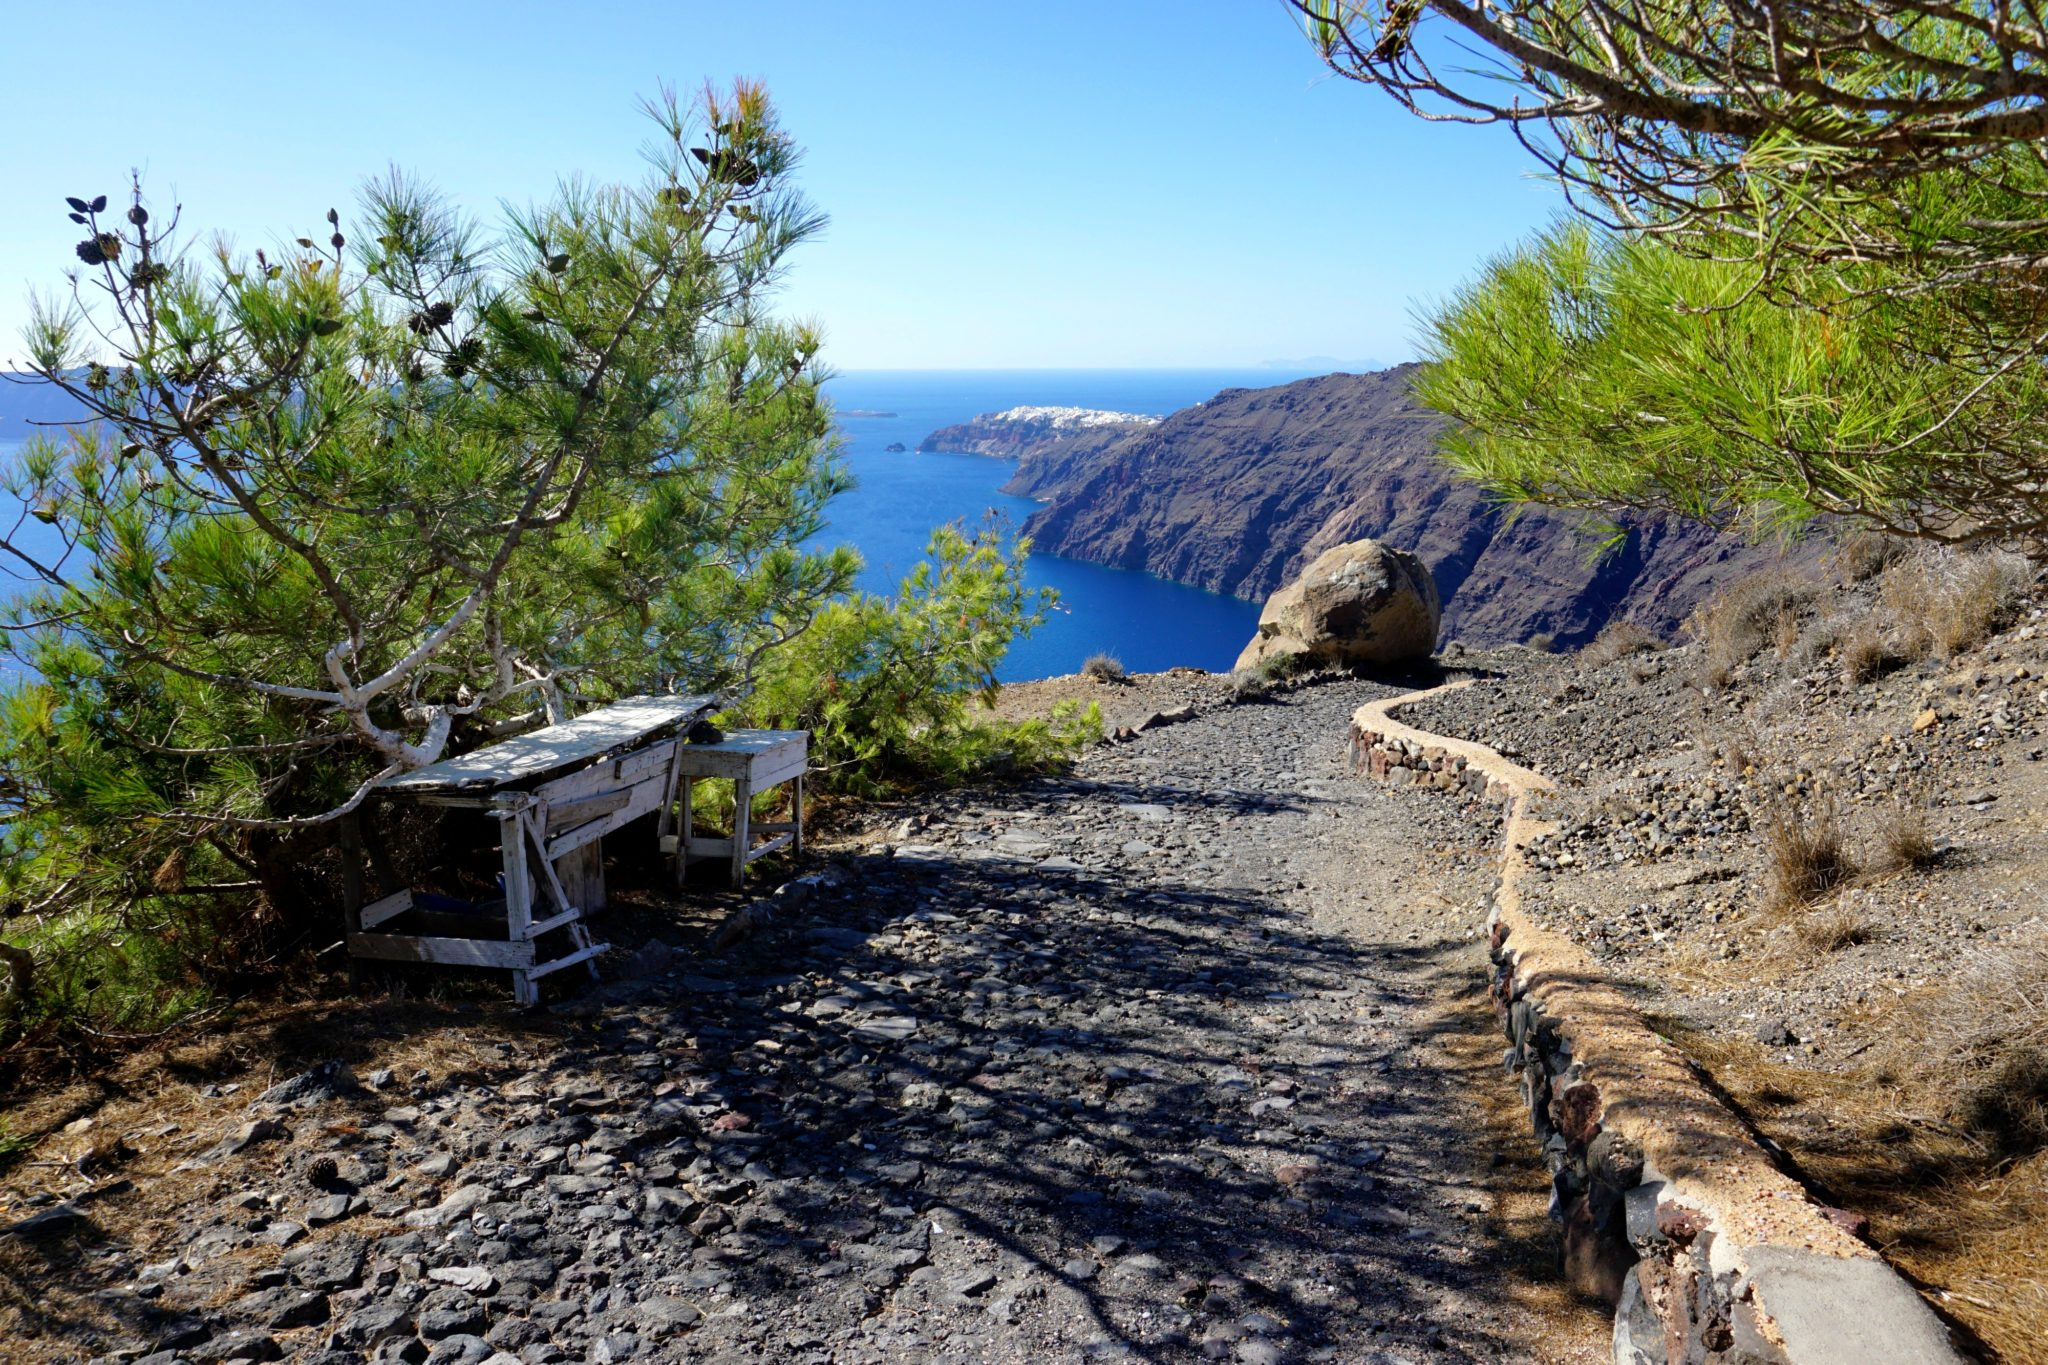 One of many beautiful views along the Fira to Oia hike.